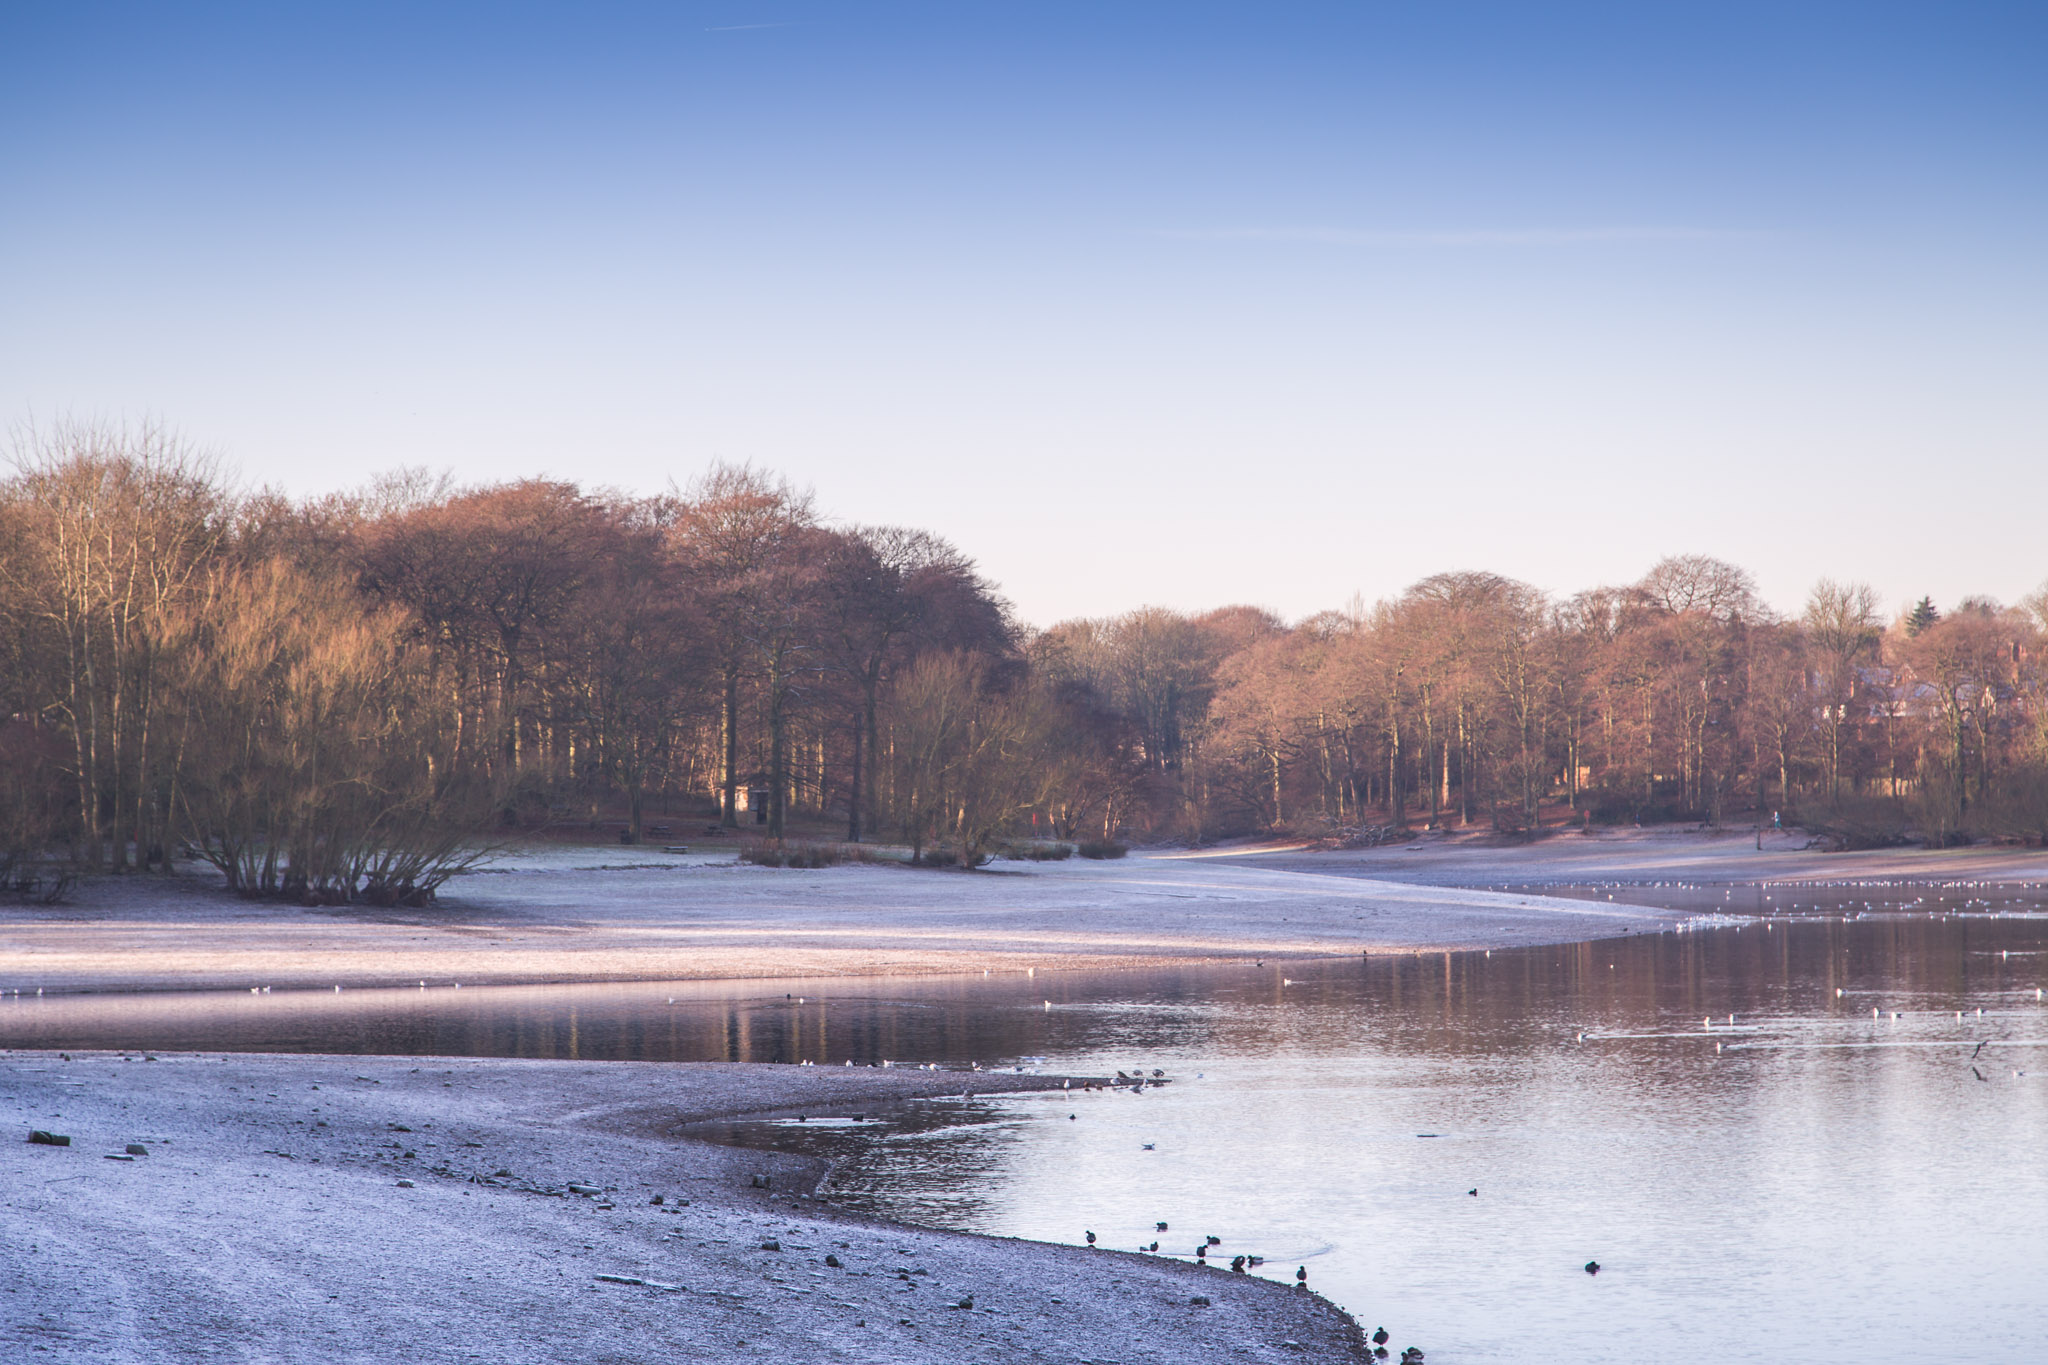 Frosty morning on the banks of Edgbaston Reservoir, Birmingham